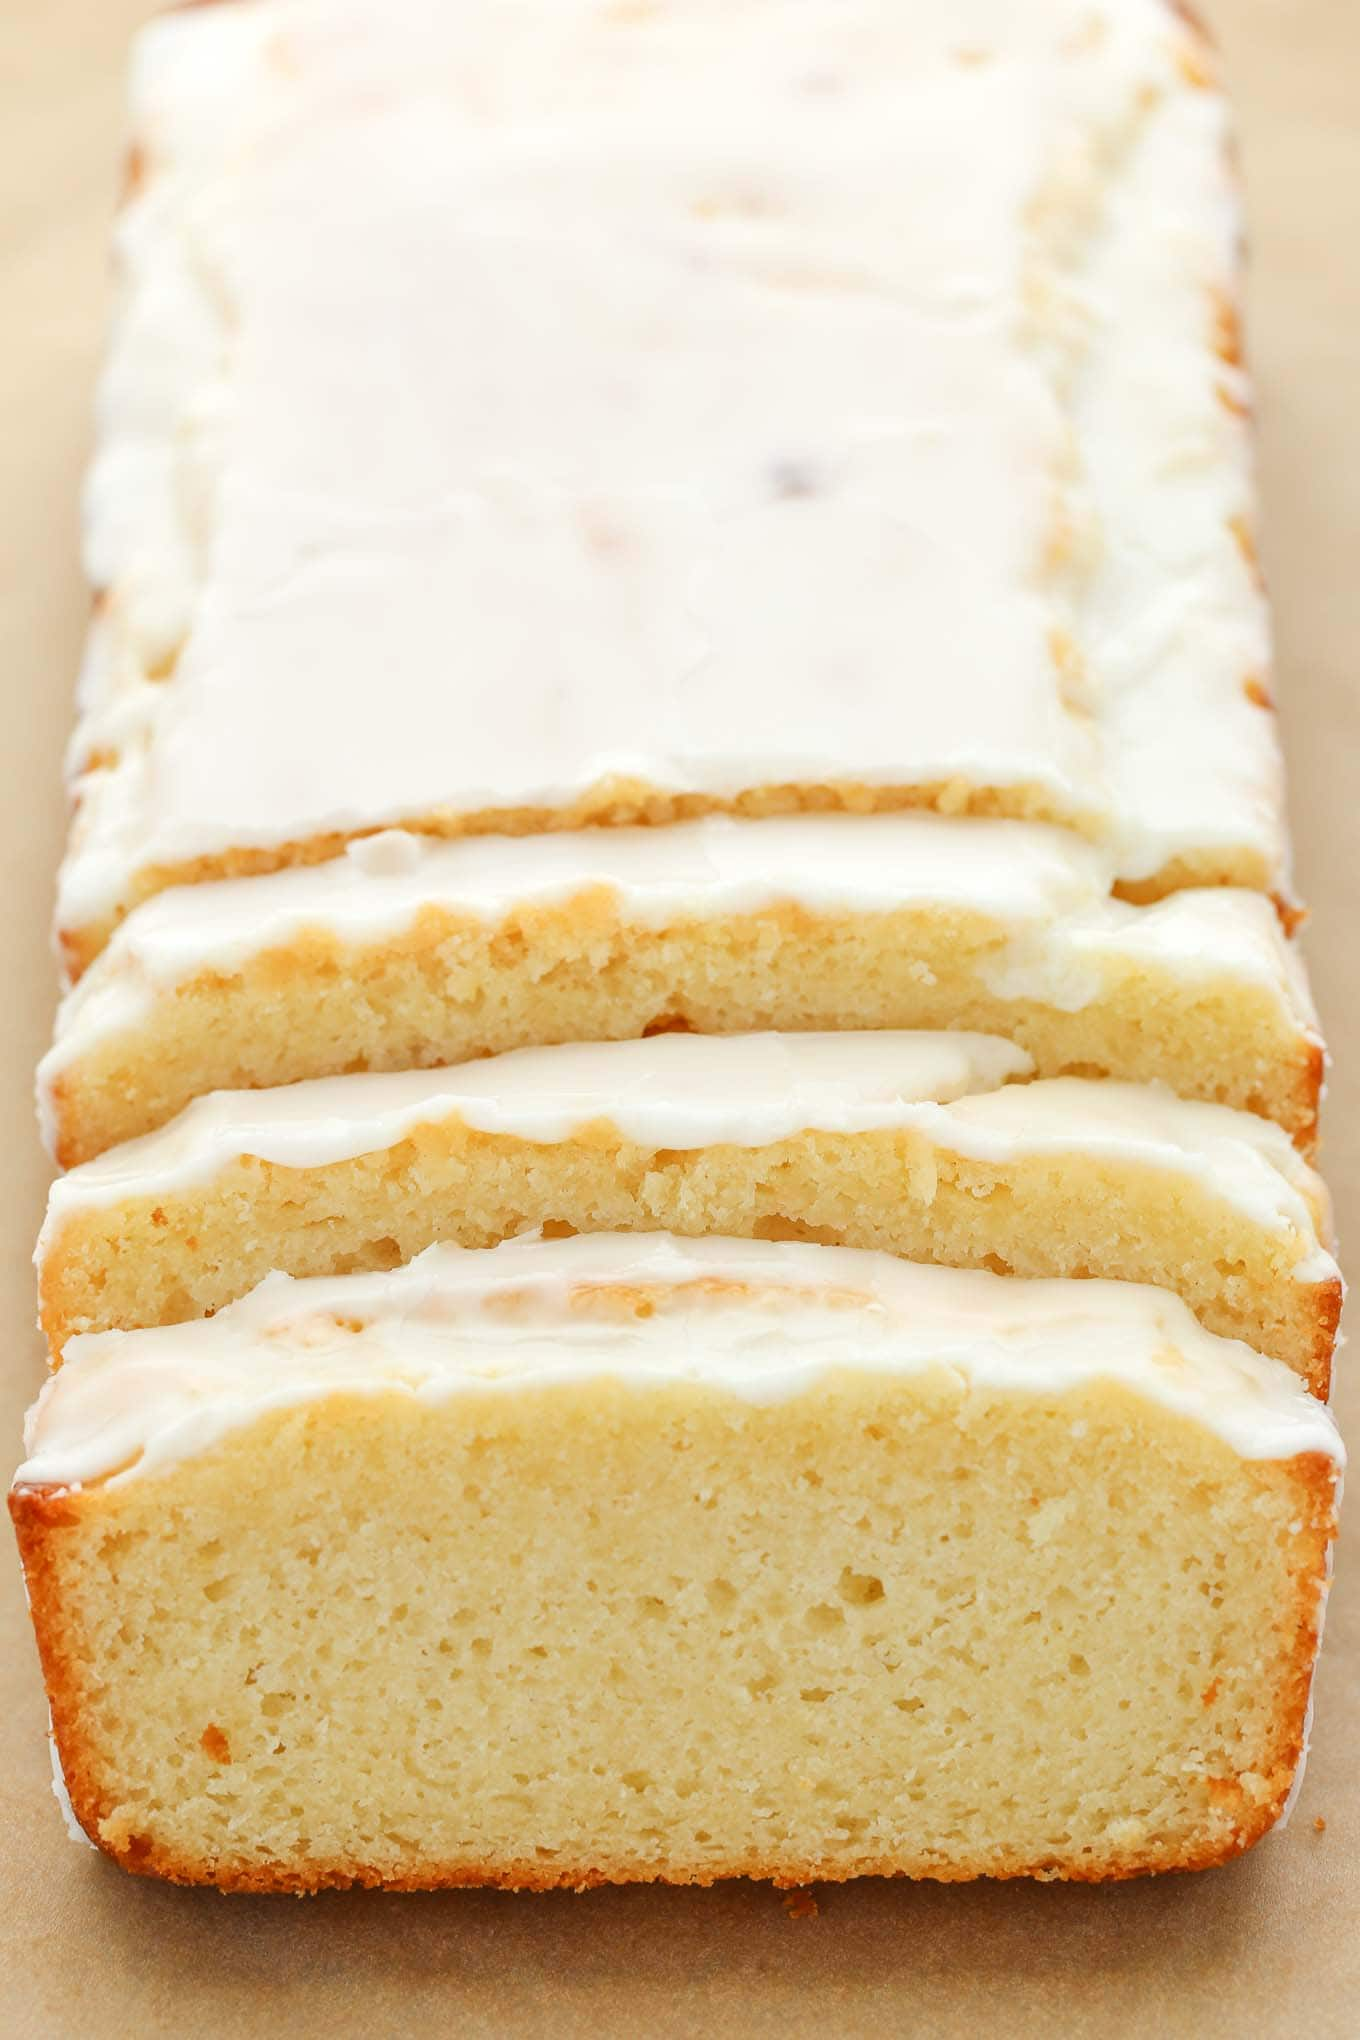 An easy lemon bread recipe topped with a sweet lemon glaze. This Glazed Lemon Bread is perfect for breakfast, brunch, or dessert!